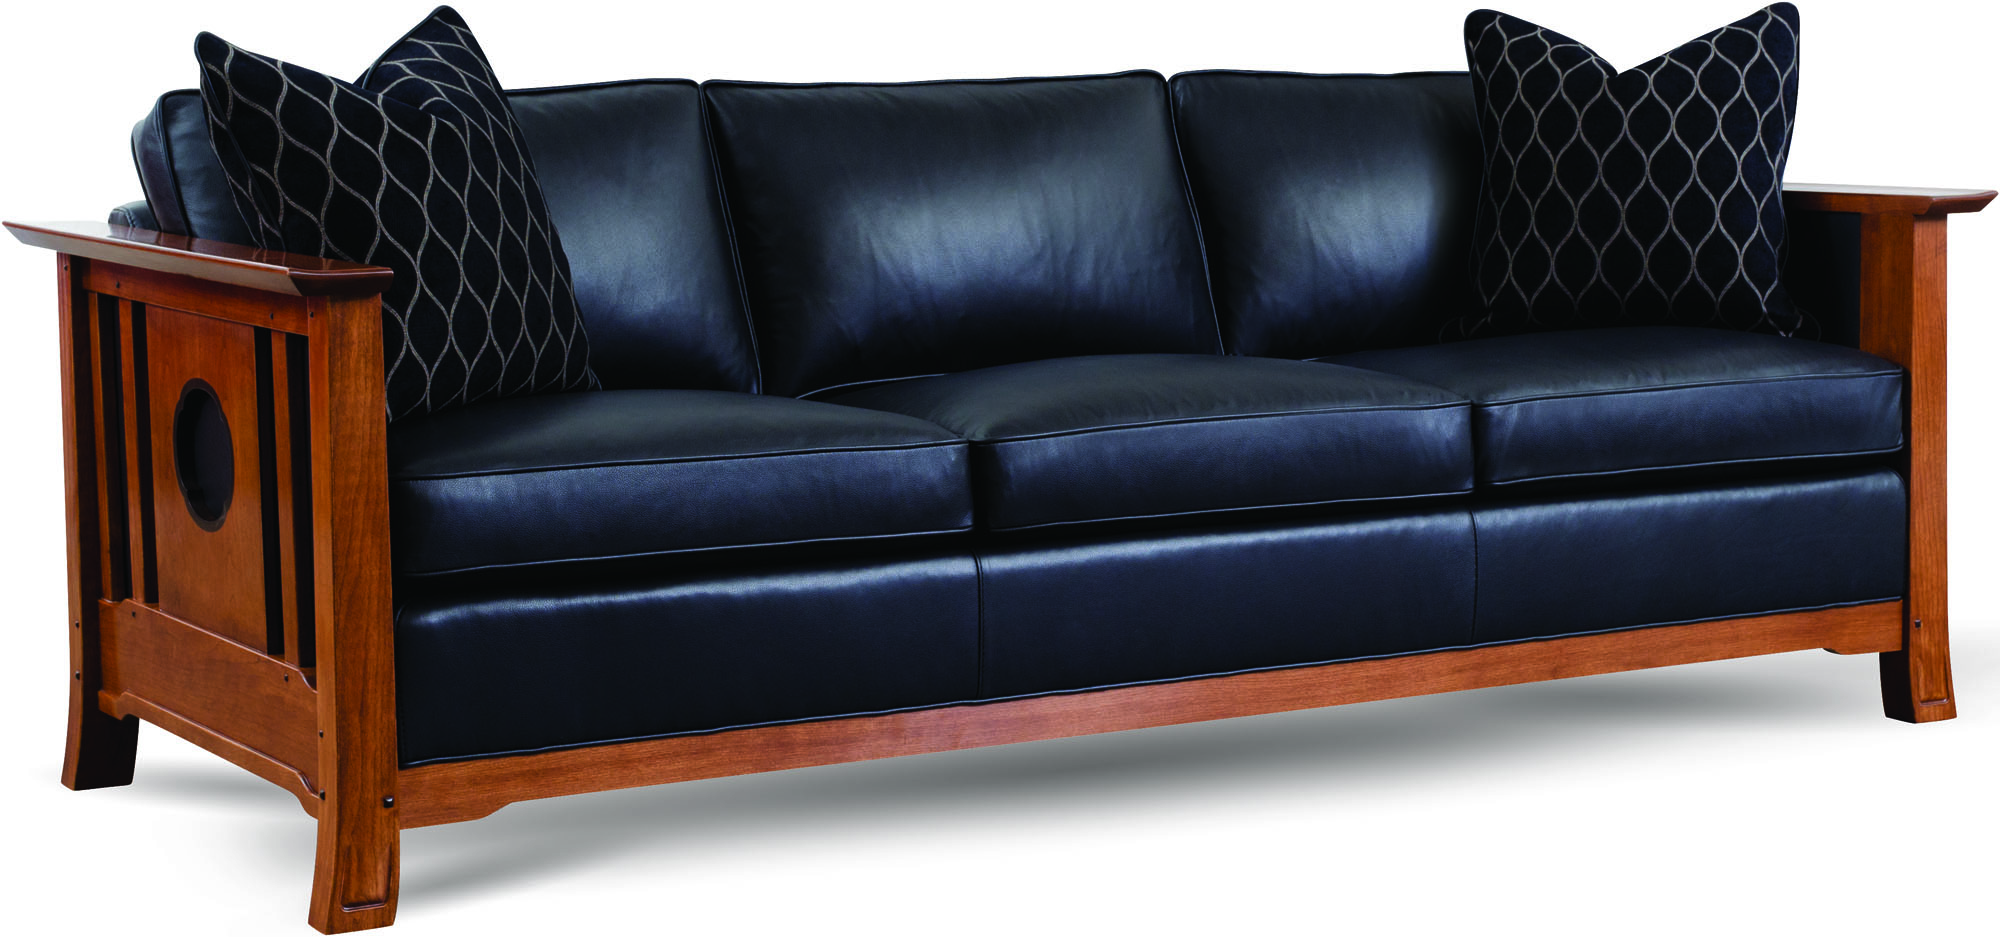 Oak Knoll sofa from Stickley